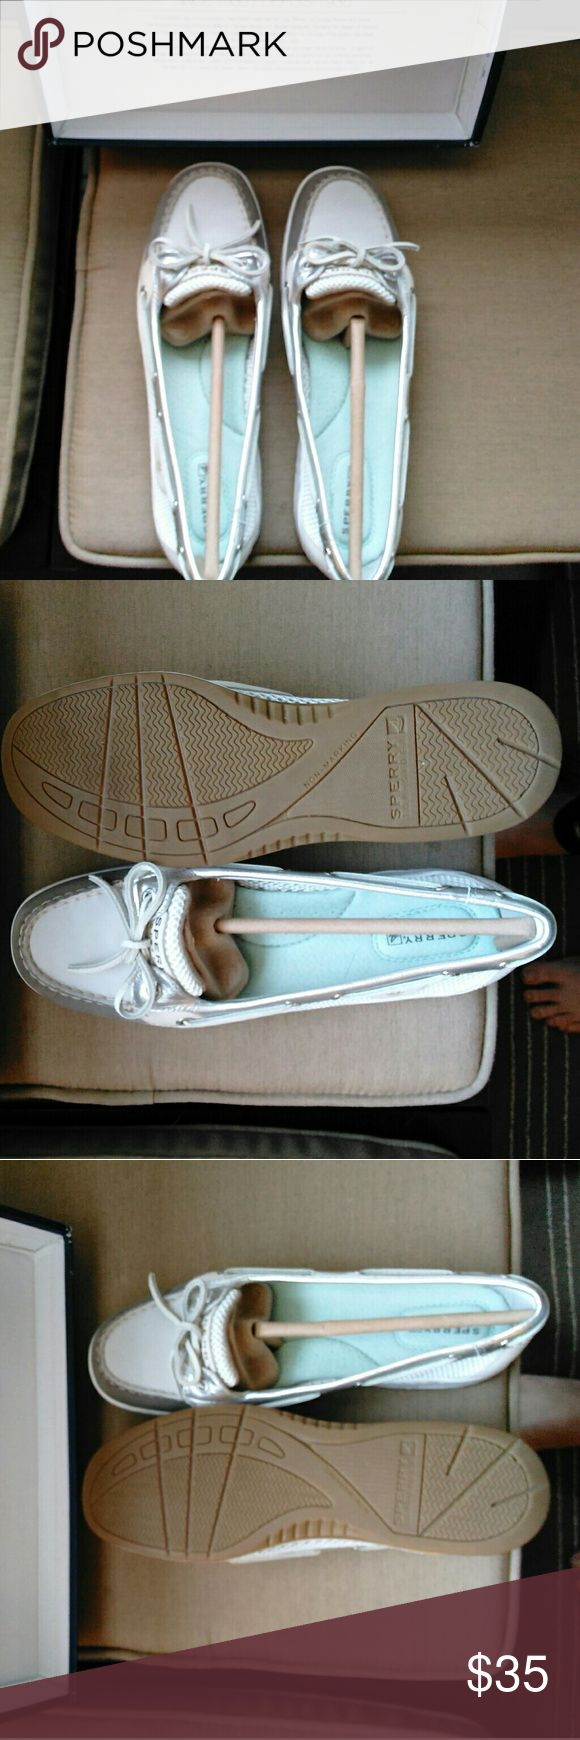 Sperry angelfish shoes Brand new, never worn and still in the box. Medium width. I would keep them but I need them in a wide width. Very cute for spring and summer! Their is a very light pink streak along the side of the shoe. This must have happened at the factory because they came like that. I didn't notice it at first and would have kept them except for the width issue. Sperry Top-Sider Shoes Flats & Loafers